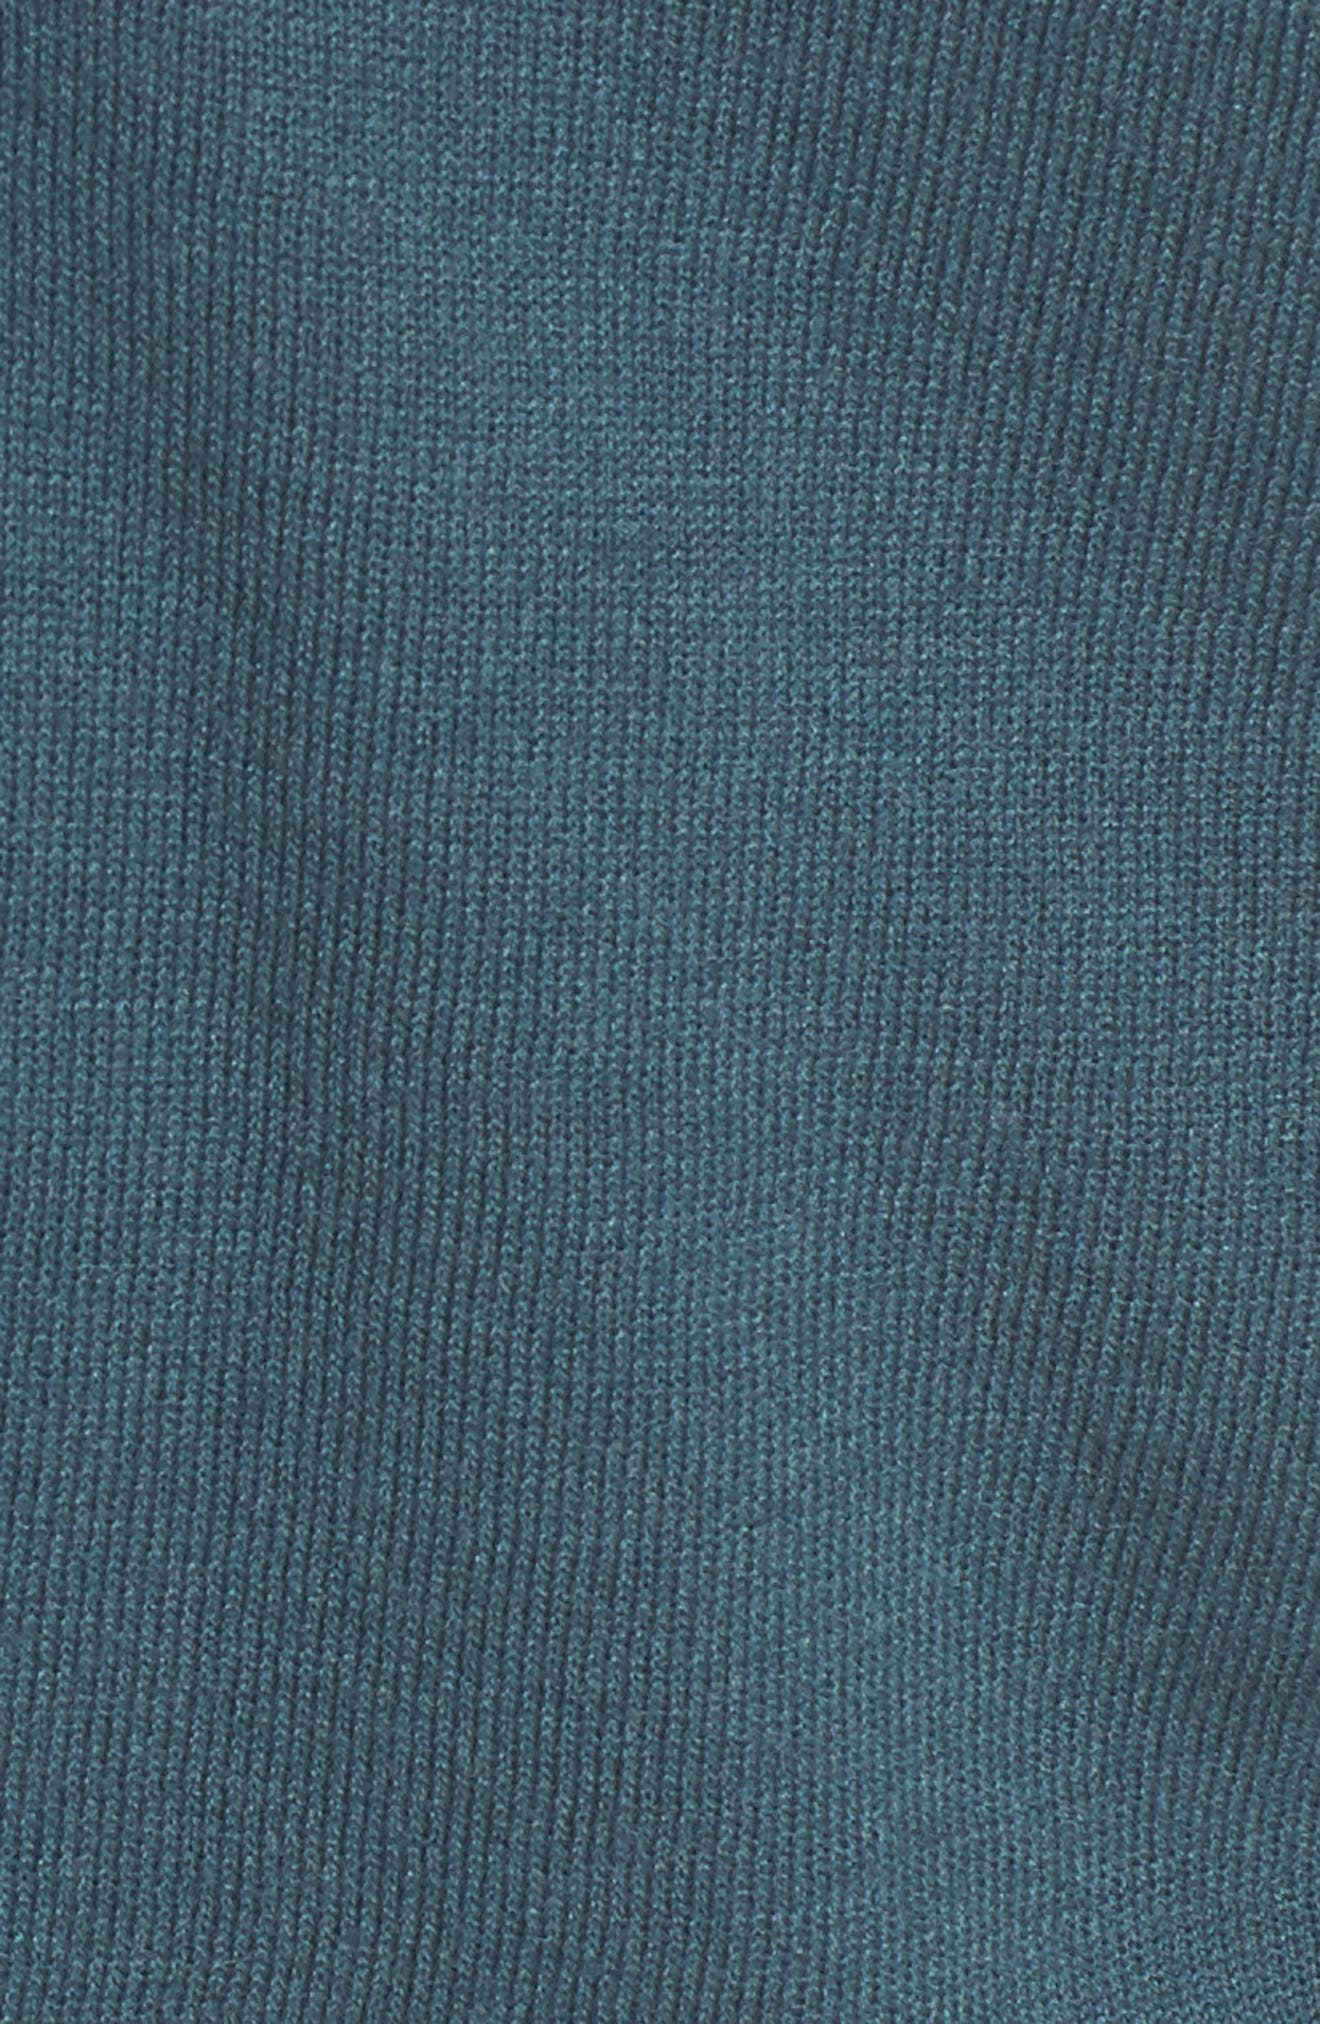 Ruched Sweater,                             Alternate thumbnail 5, color,                             Teal Gazer